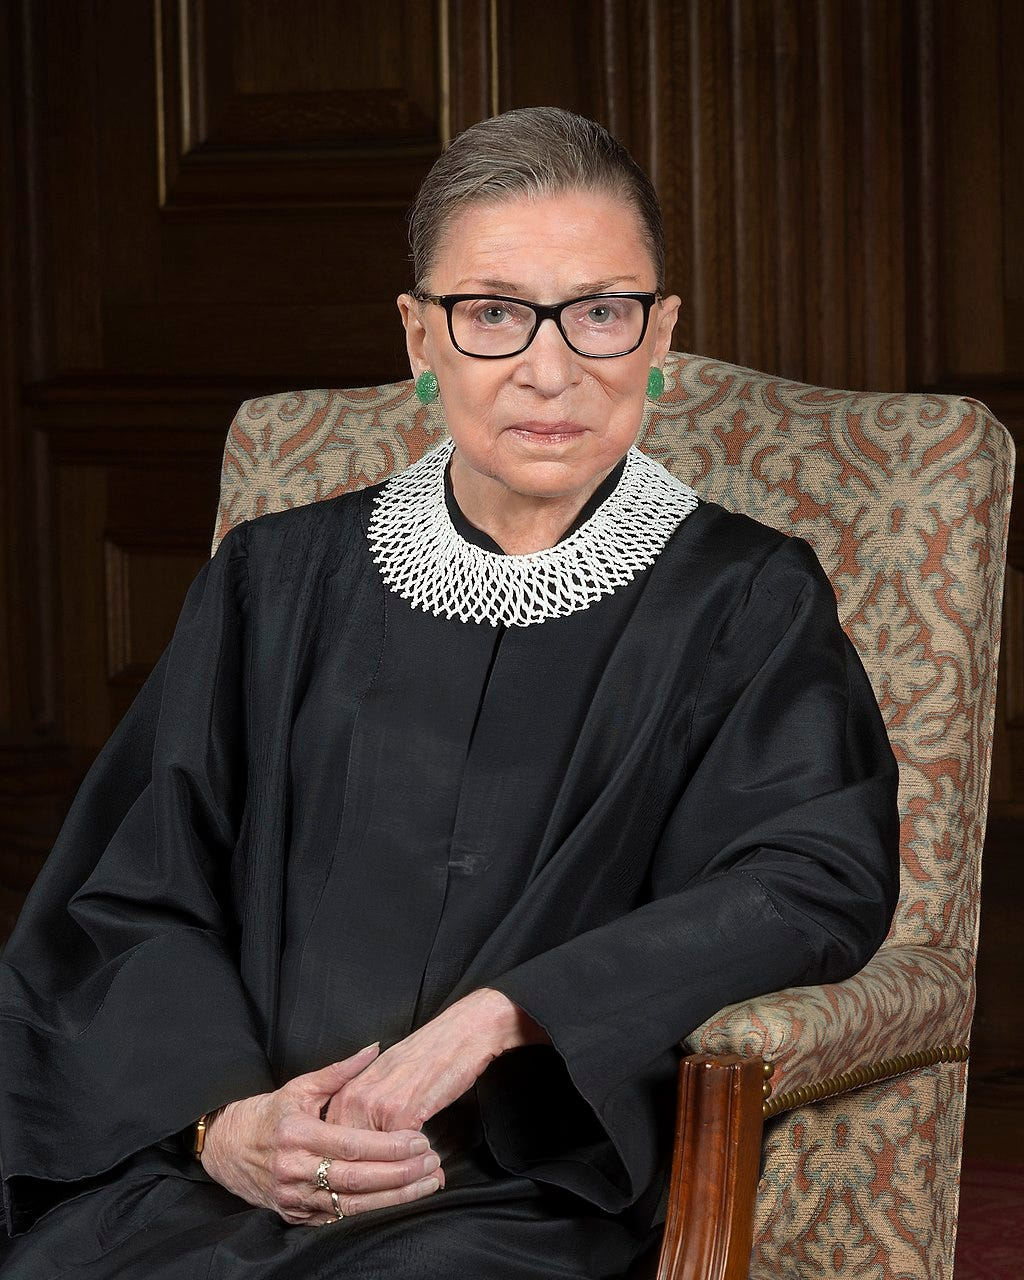 Ginsburg seated in her robe